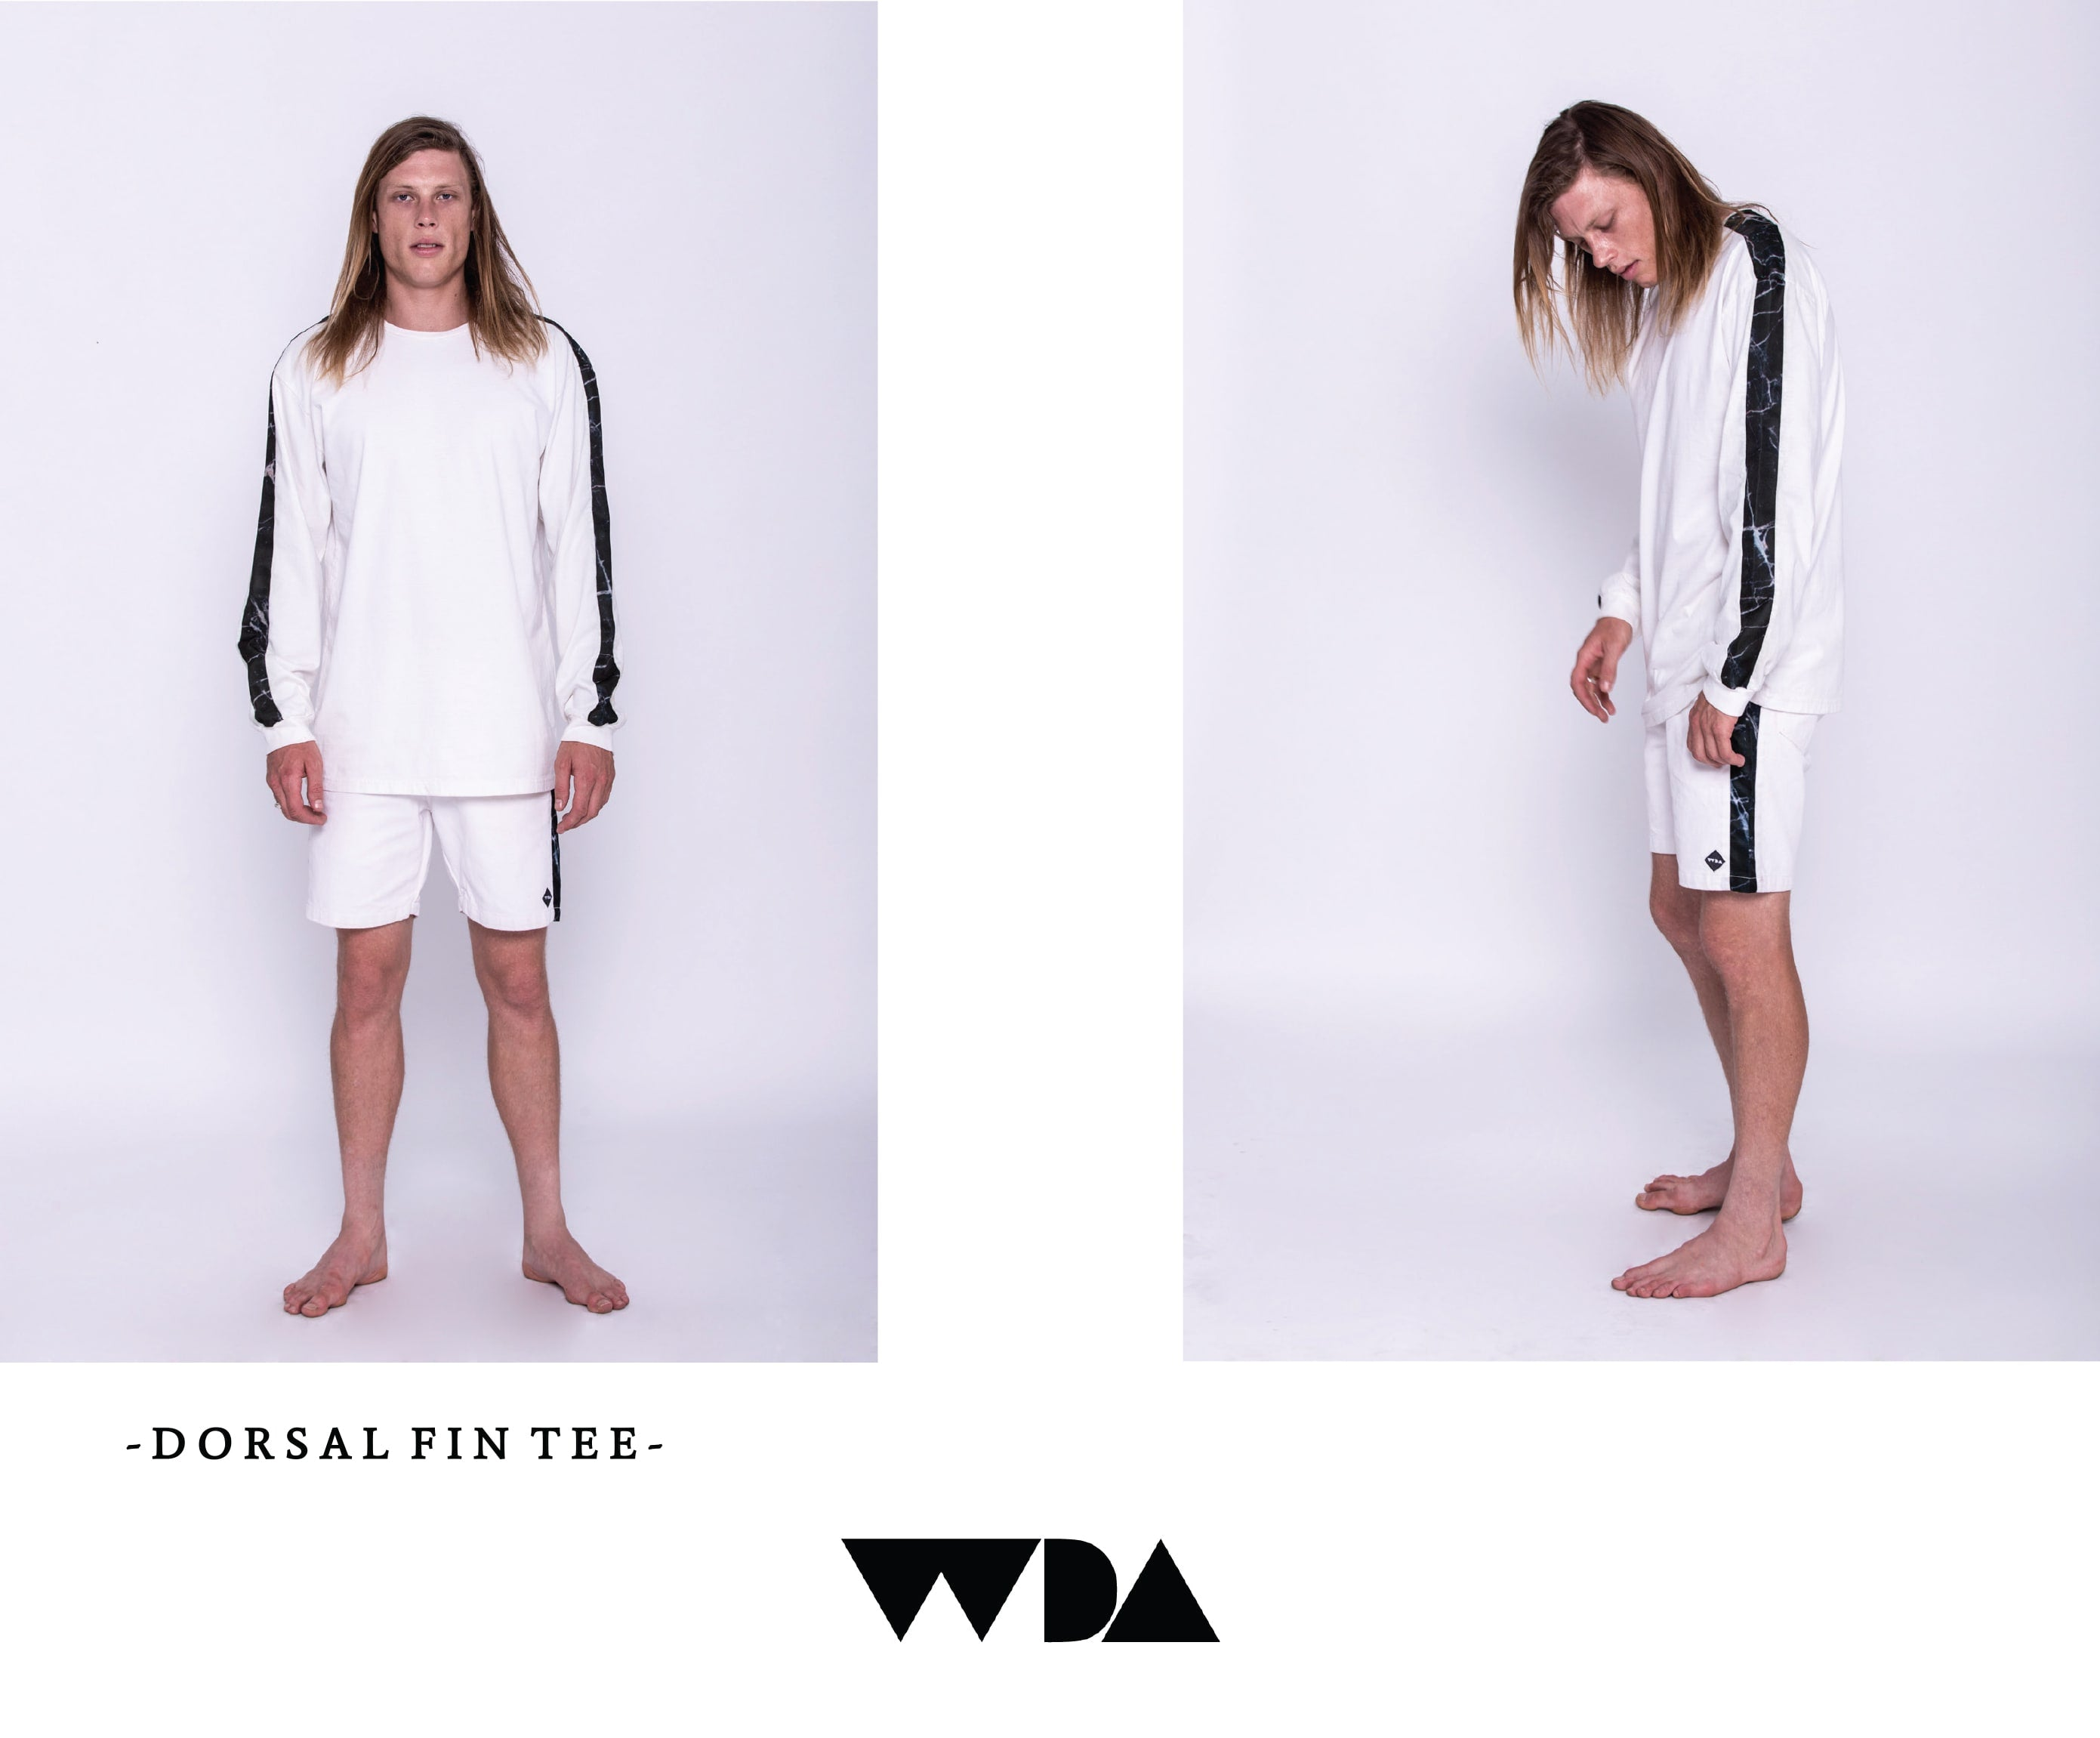 WDA, WE DREAM ALONE, CLOTHING, APPAREL, MENS, DORSAL FIN, LONGSLEEVE, MARBLE, BLACK, WHITE, FRONT VIEW, SIDE VIEW